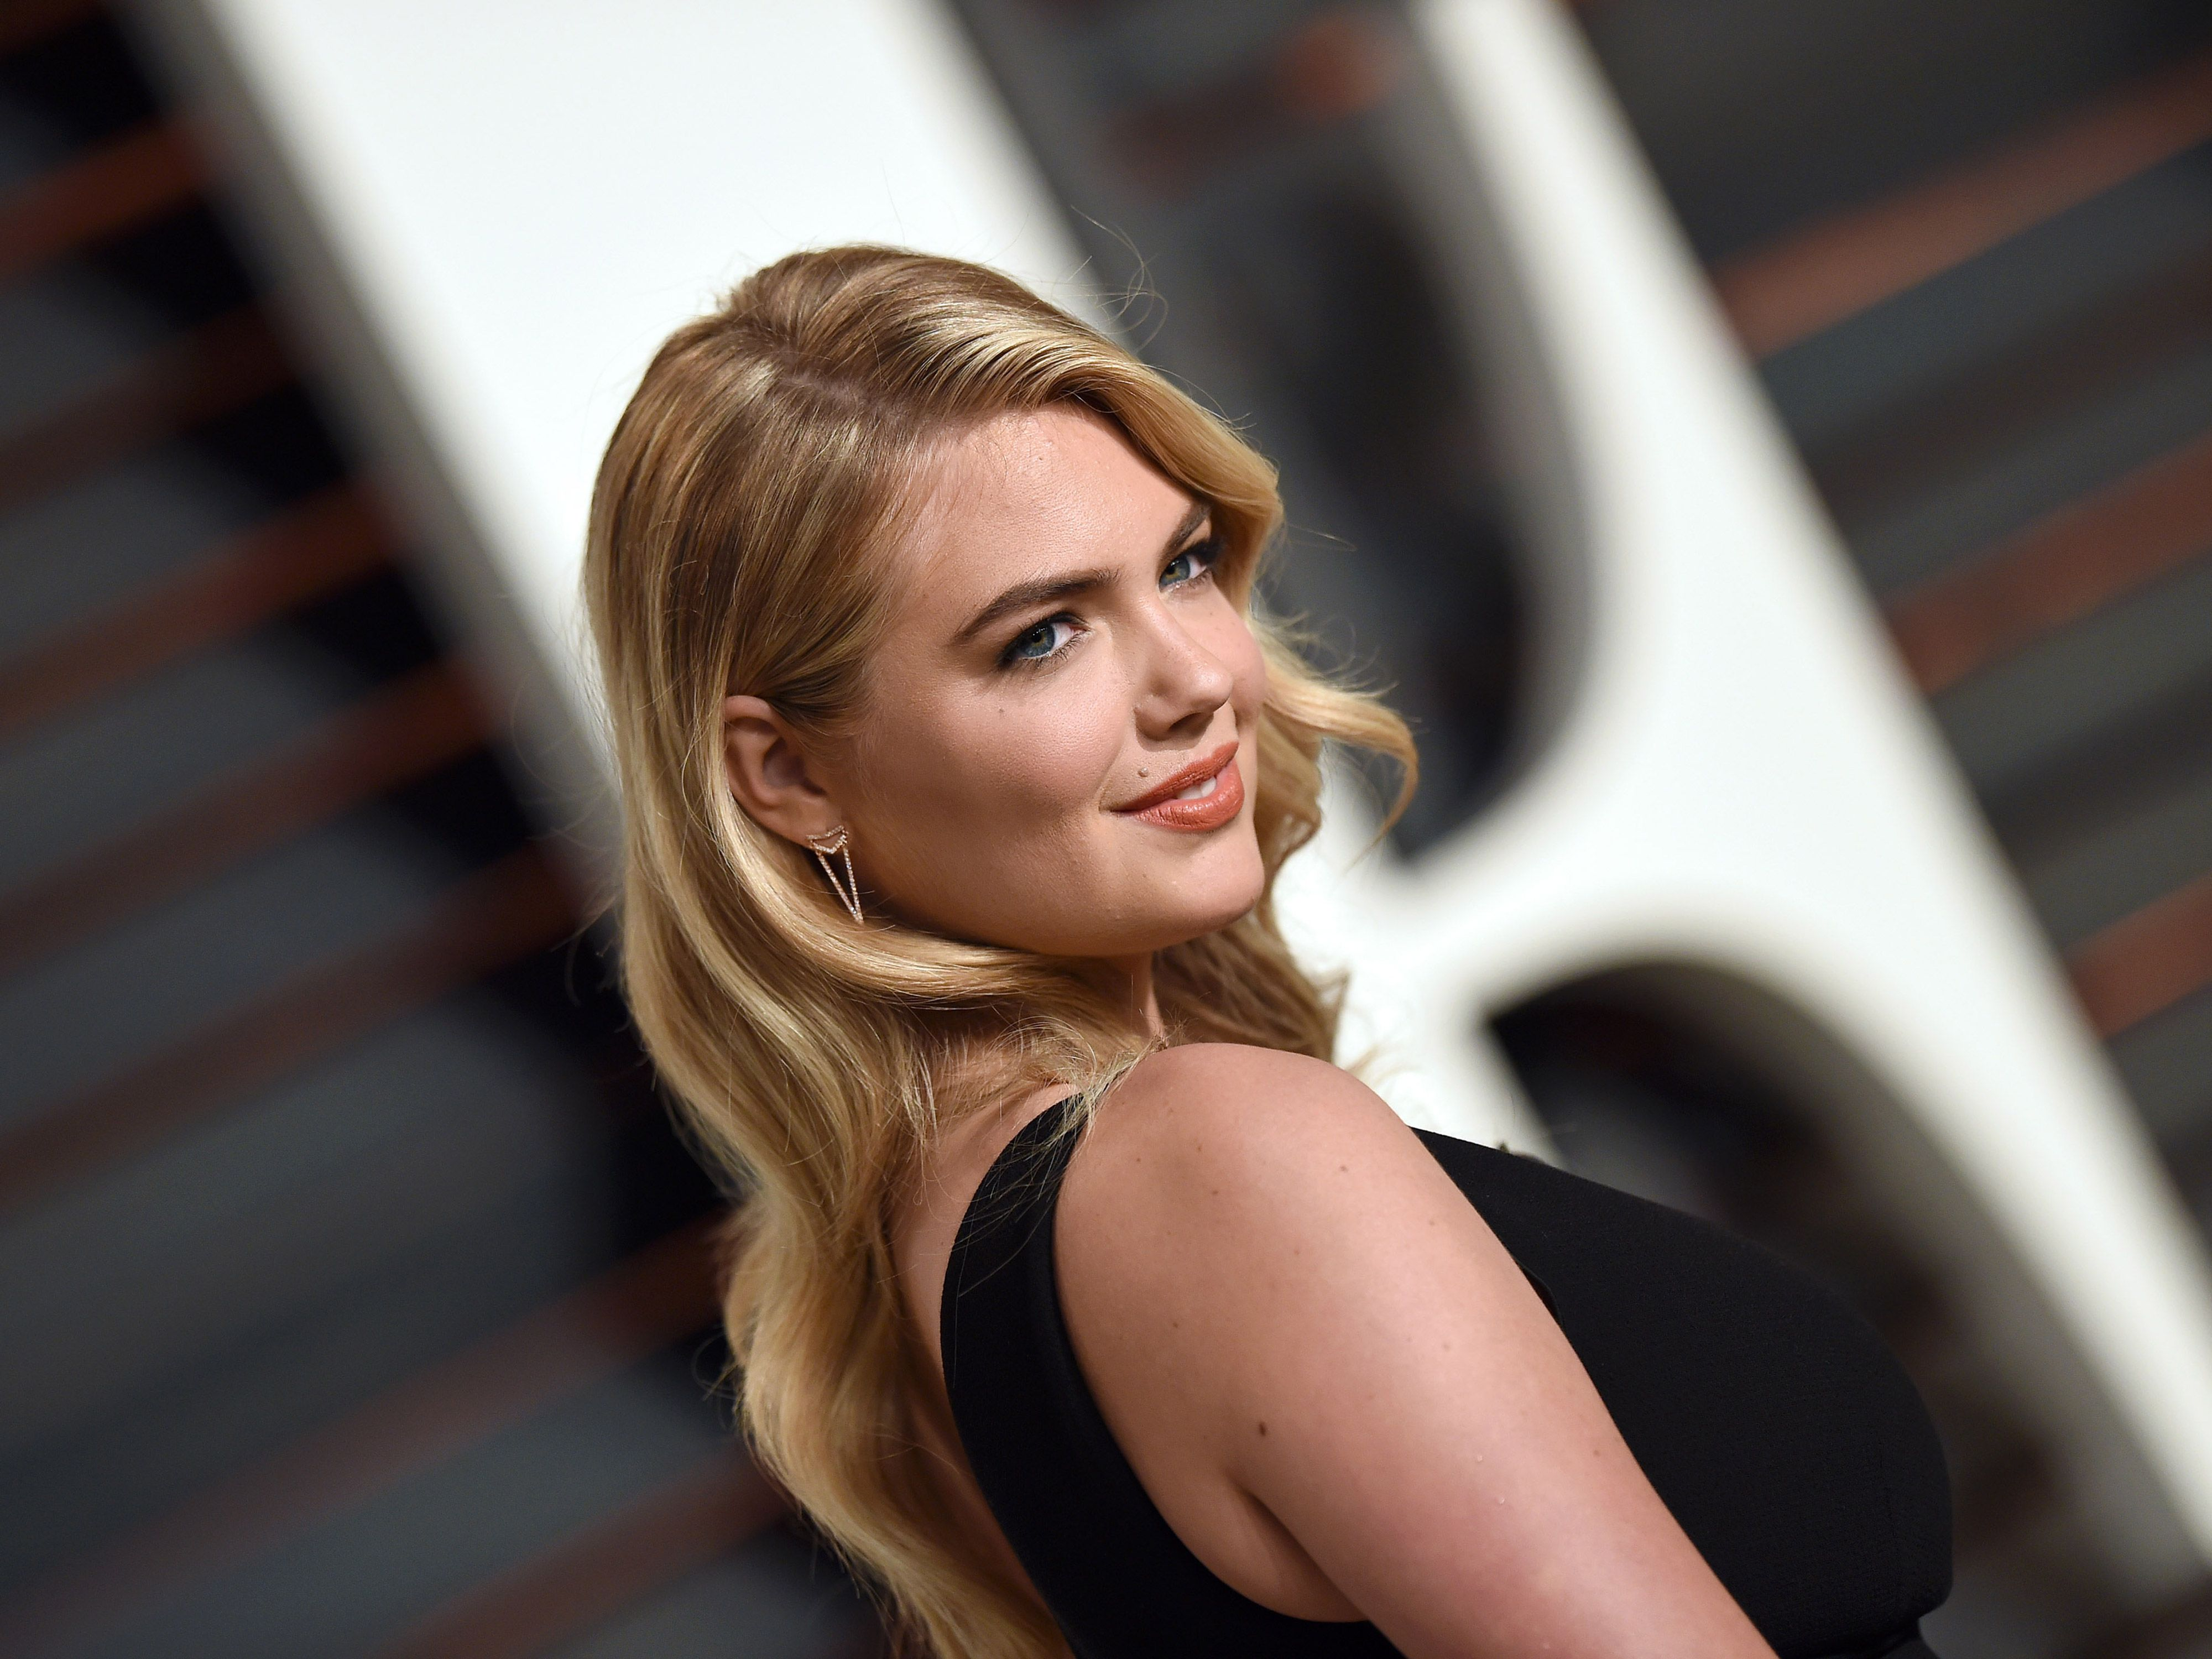 Kate Upton Alleges That Guess Co-Founder Paul Marciano Groped Her Breasts During A Meeting